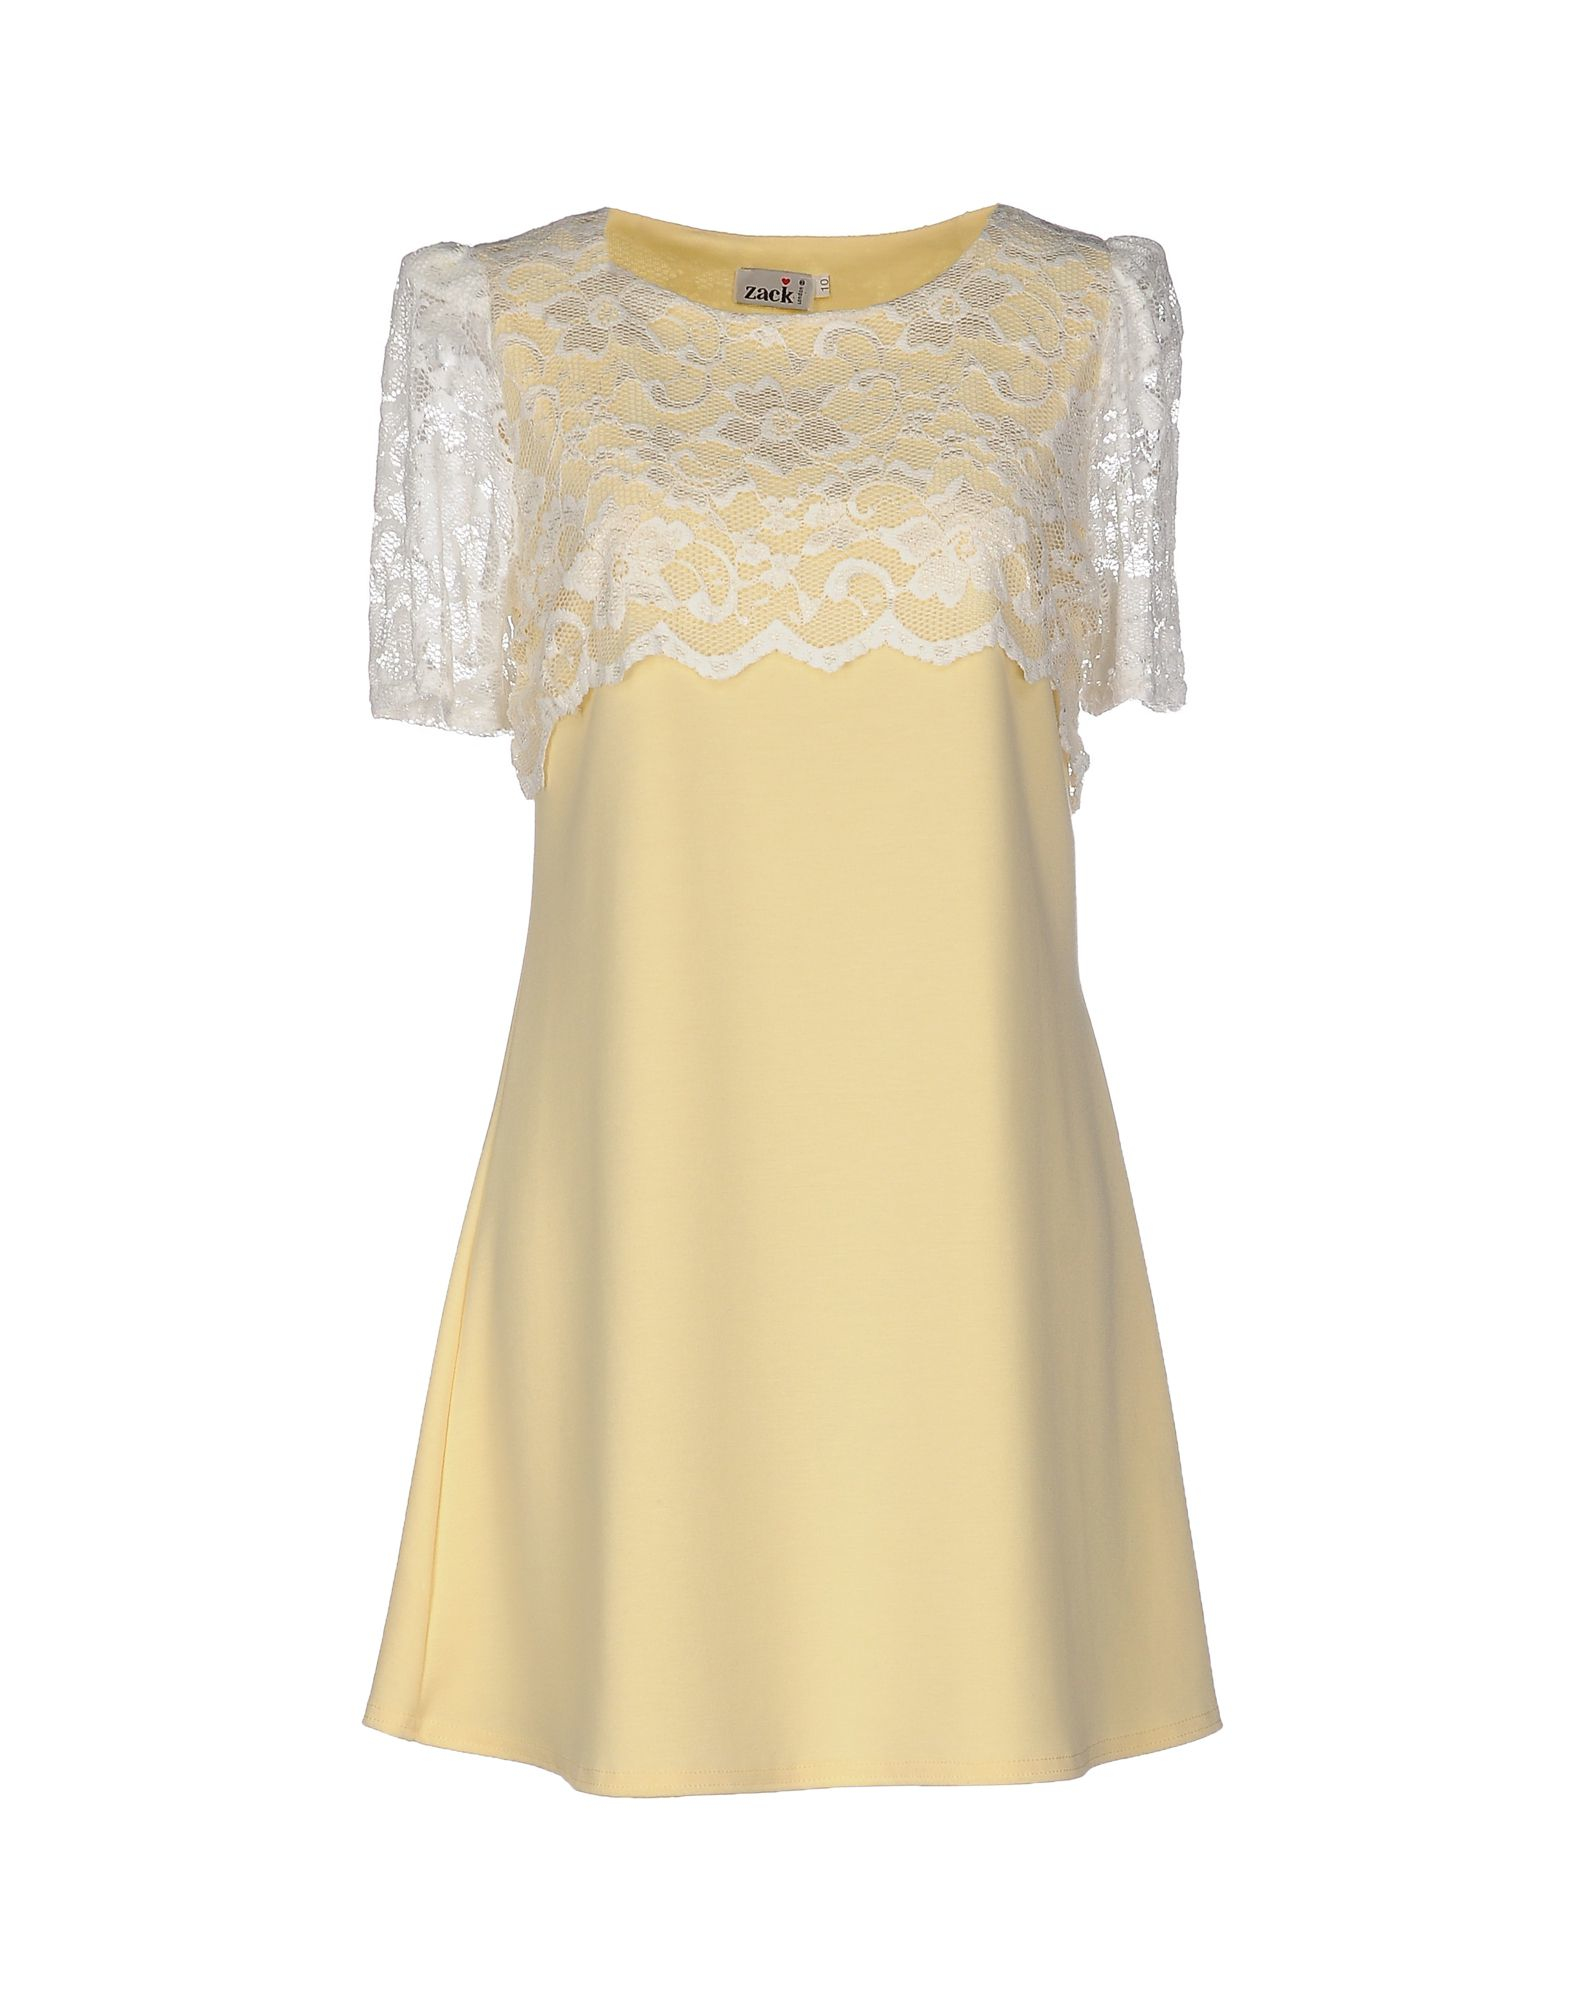 Zack Short Dress in Yellow (Light yellow) - Save 28% | Lyst